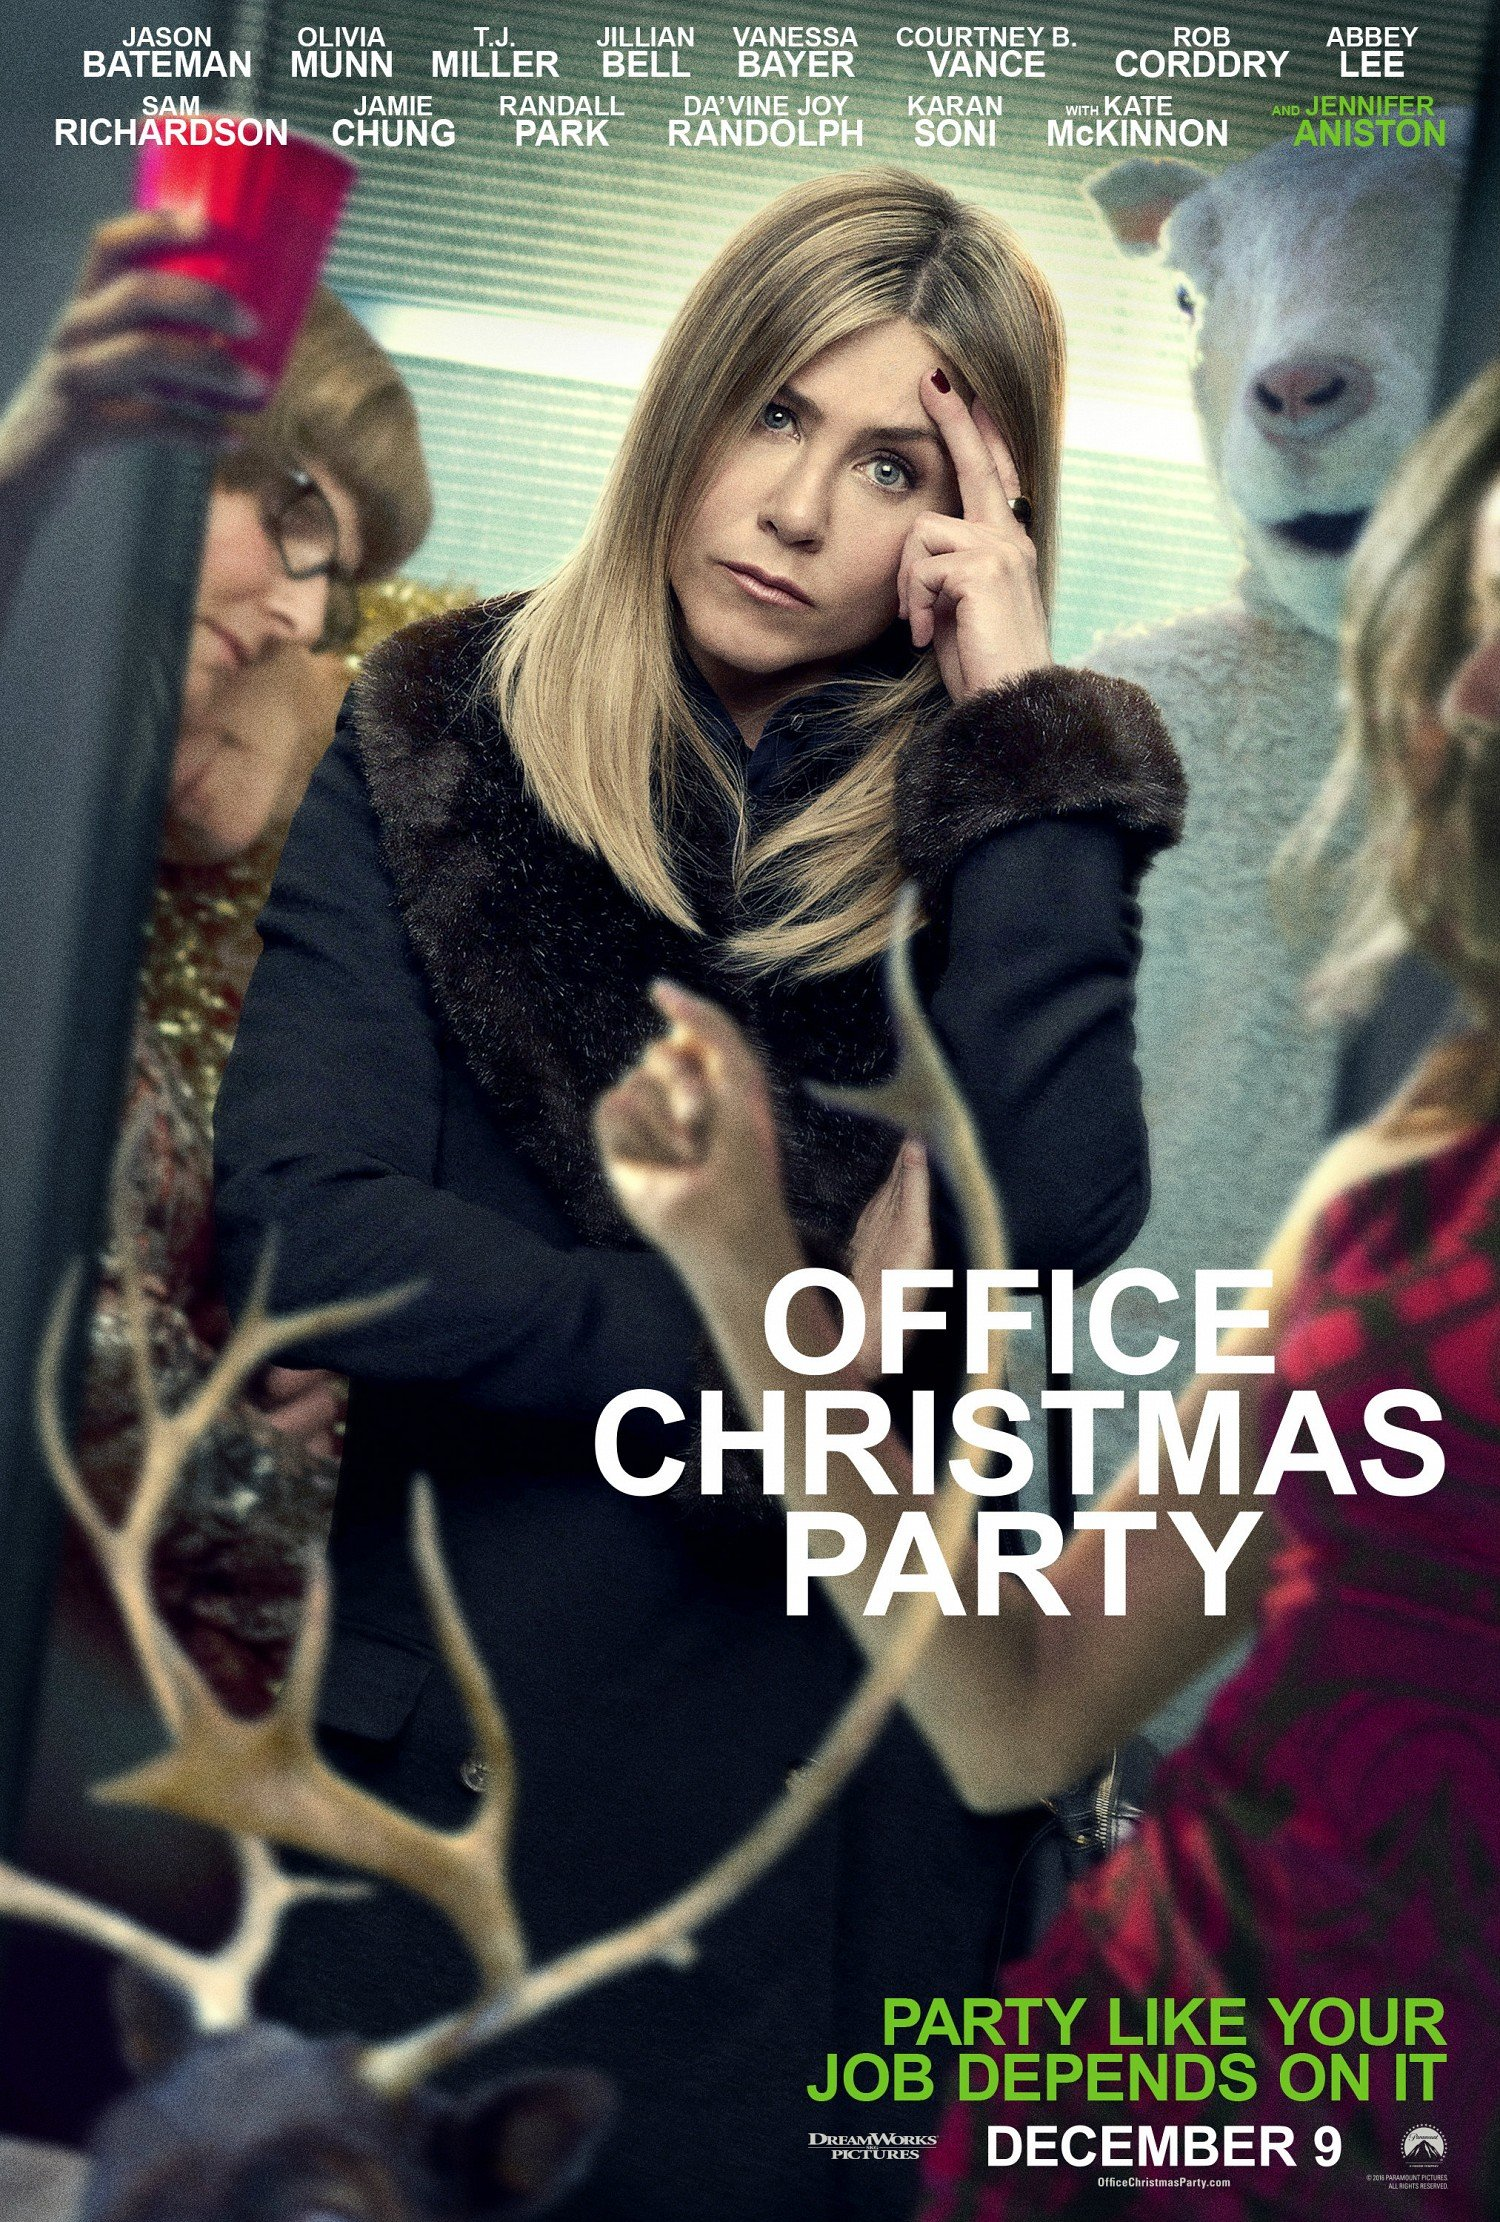 Office Christmas Party Trailer Stages A Festive Bash To Remember